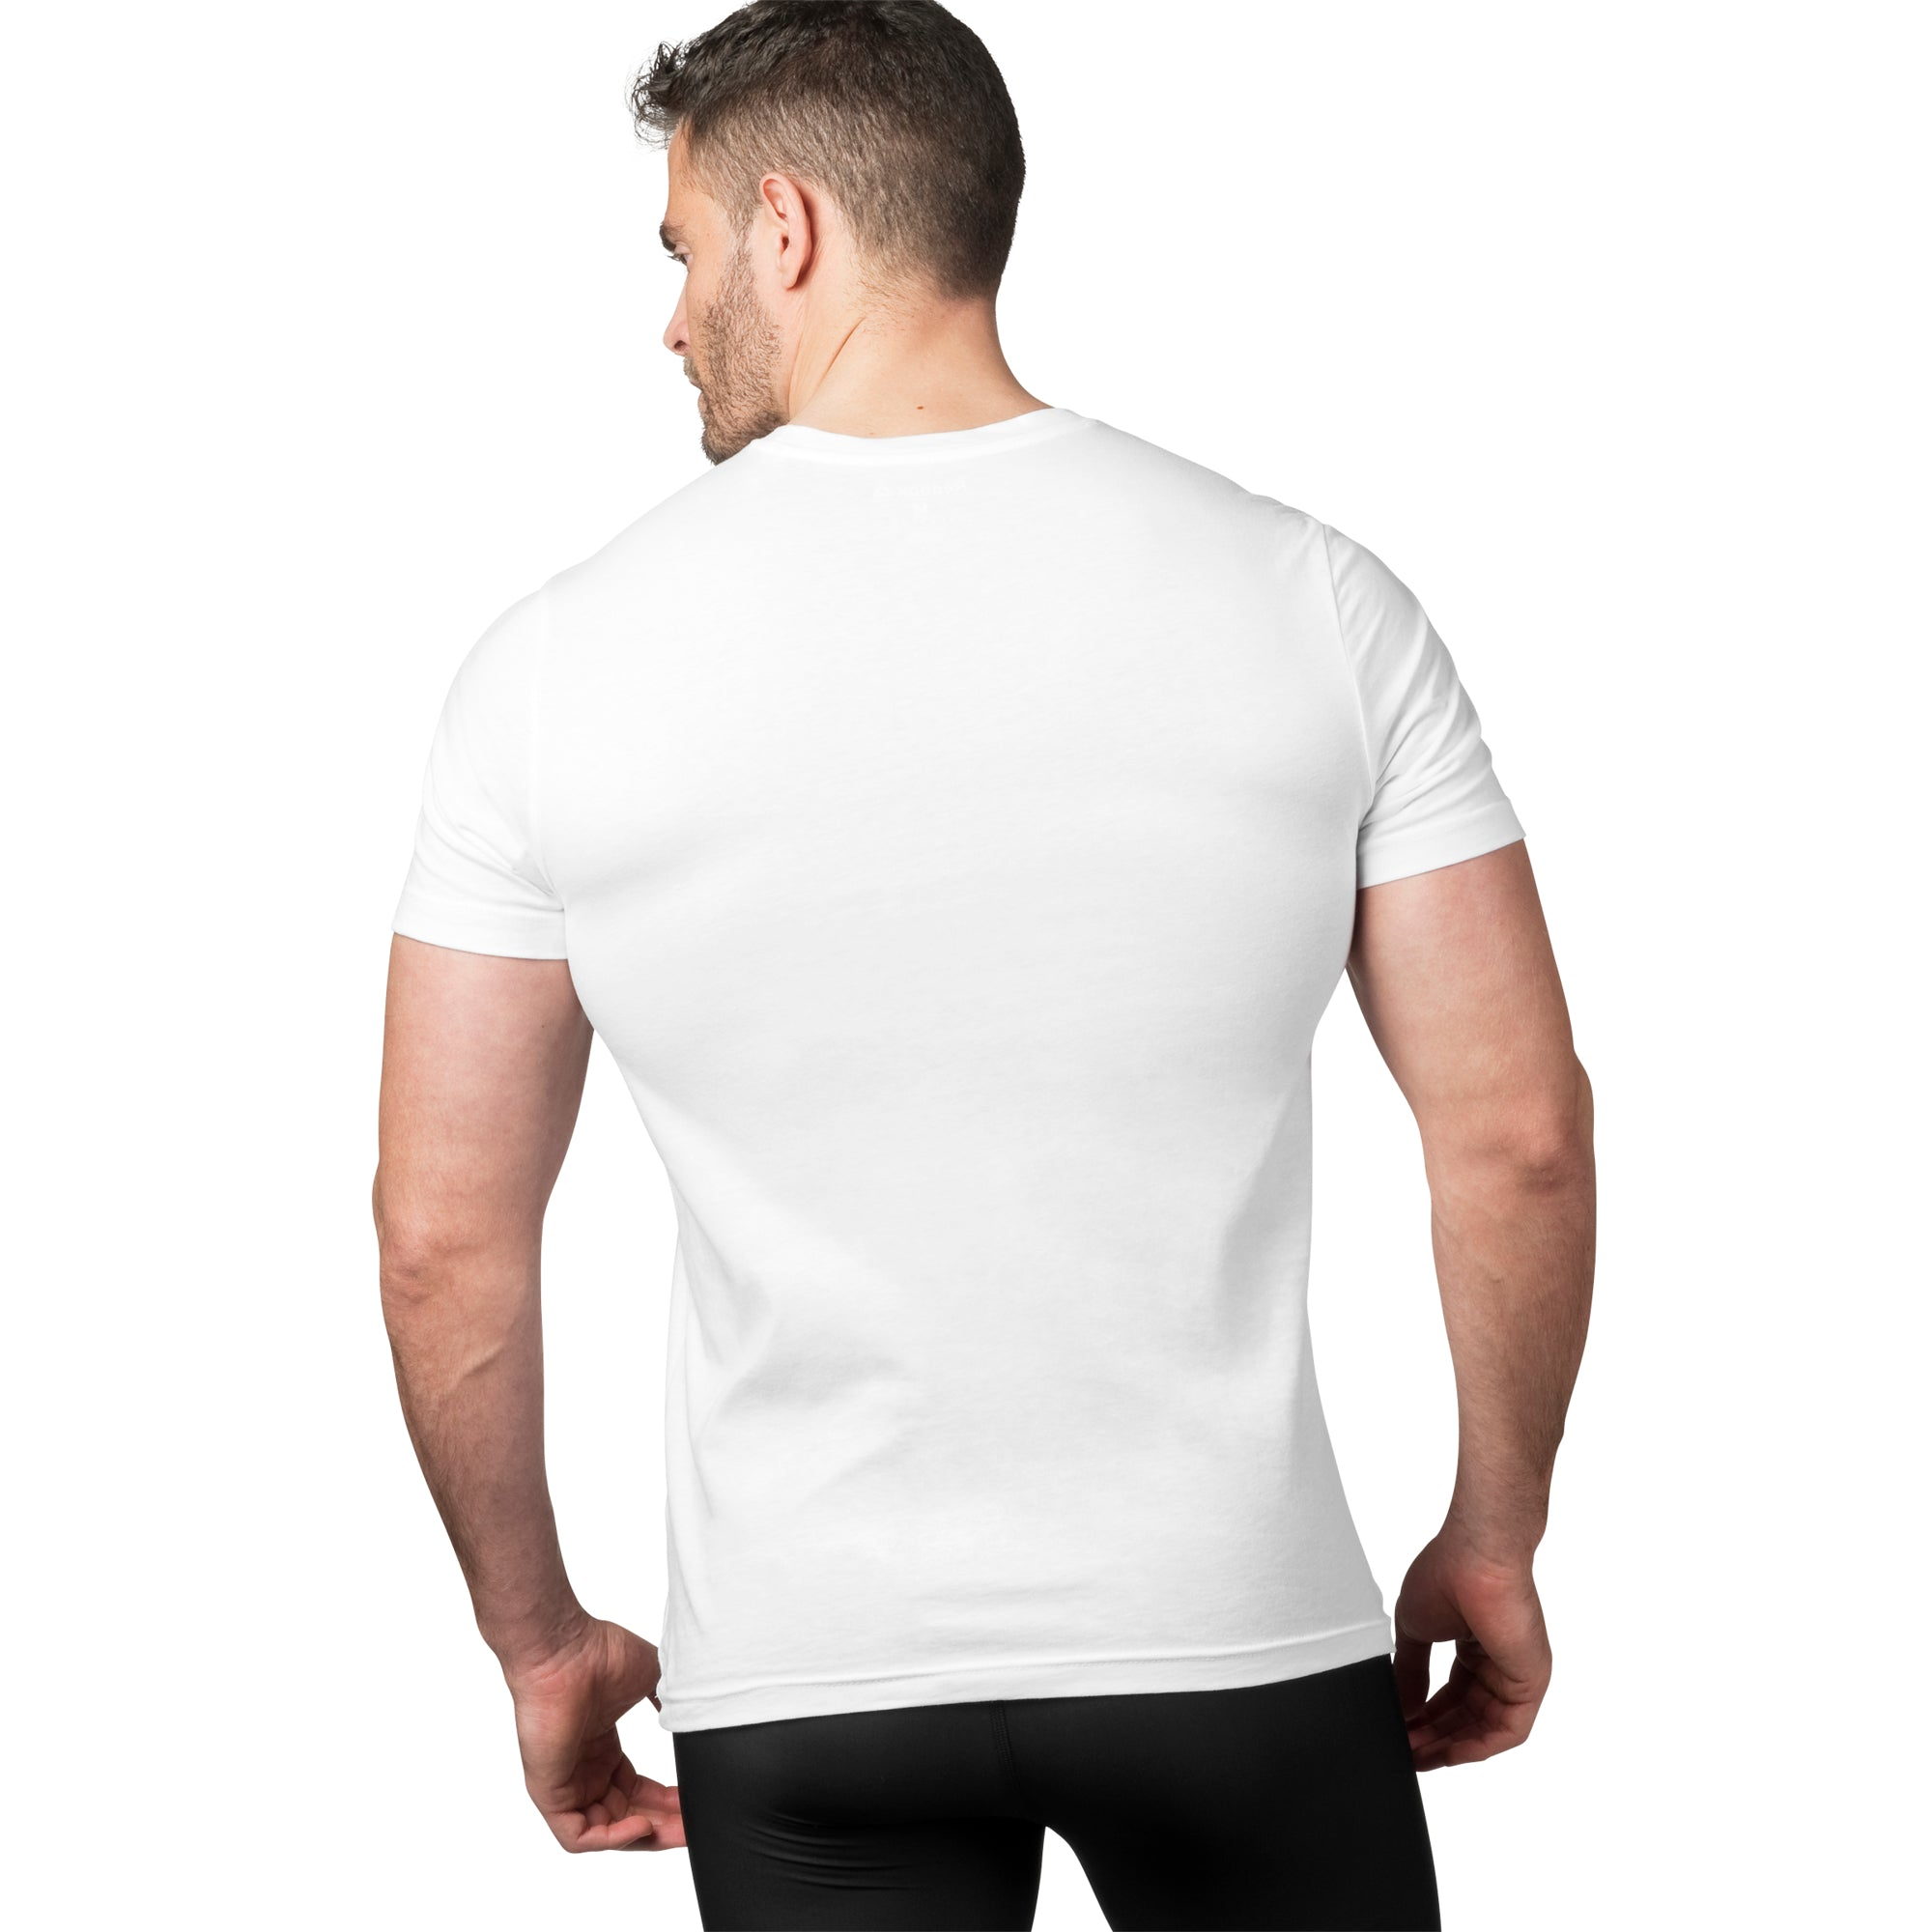 REEBOK - QCR Weightlifting T-shirt White